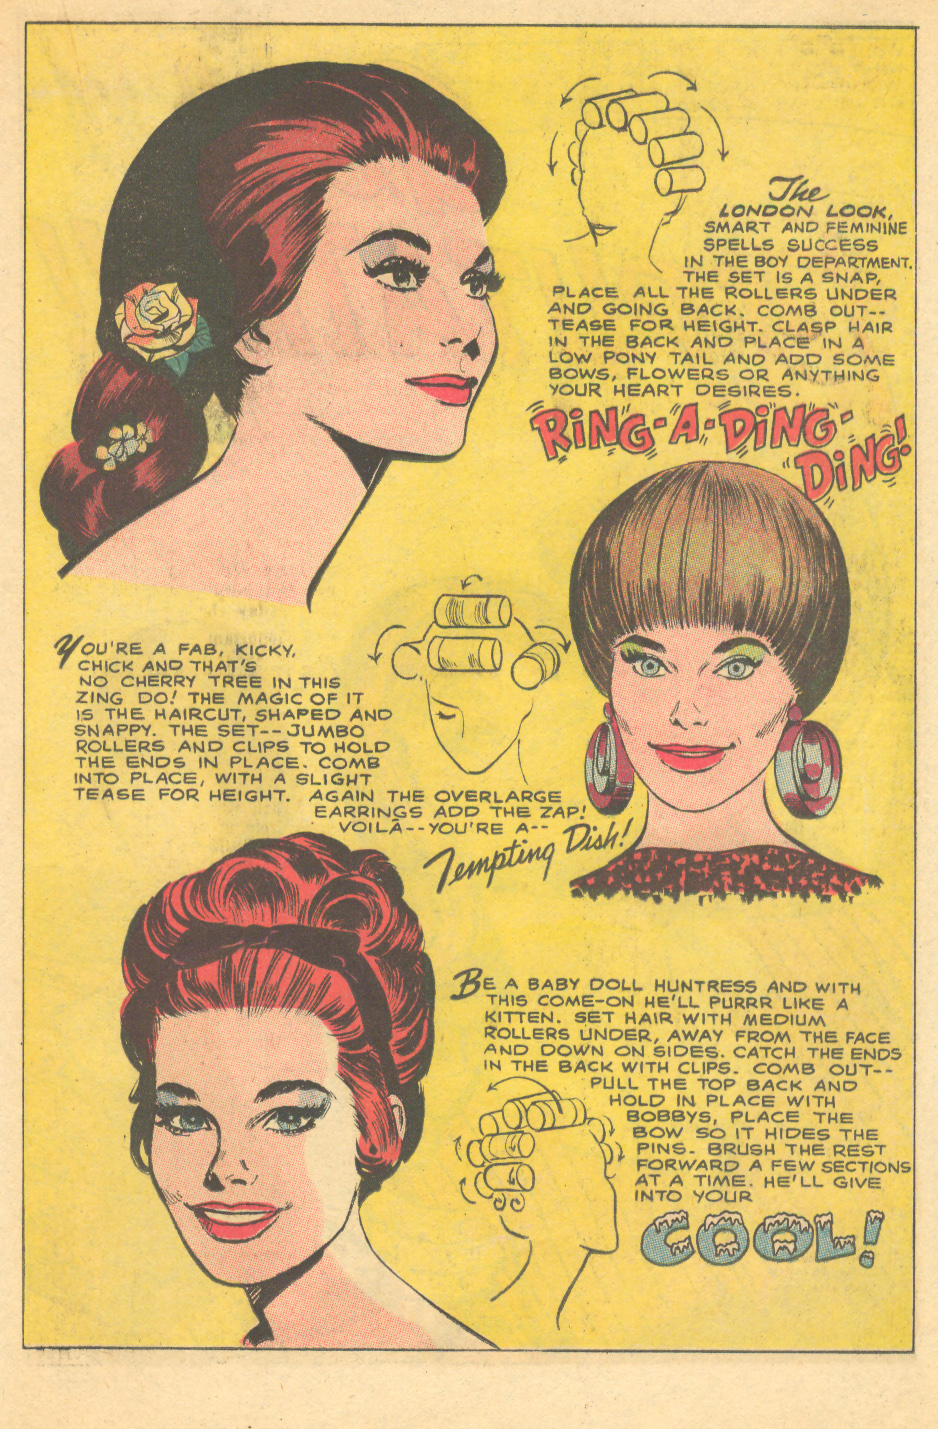 Vintage fashion illustration hair styles Jay Scott Pike